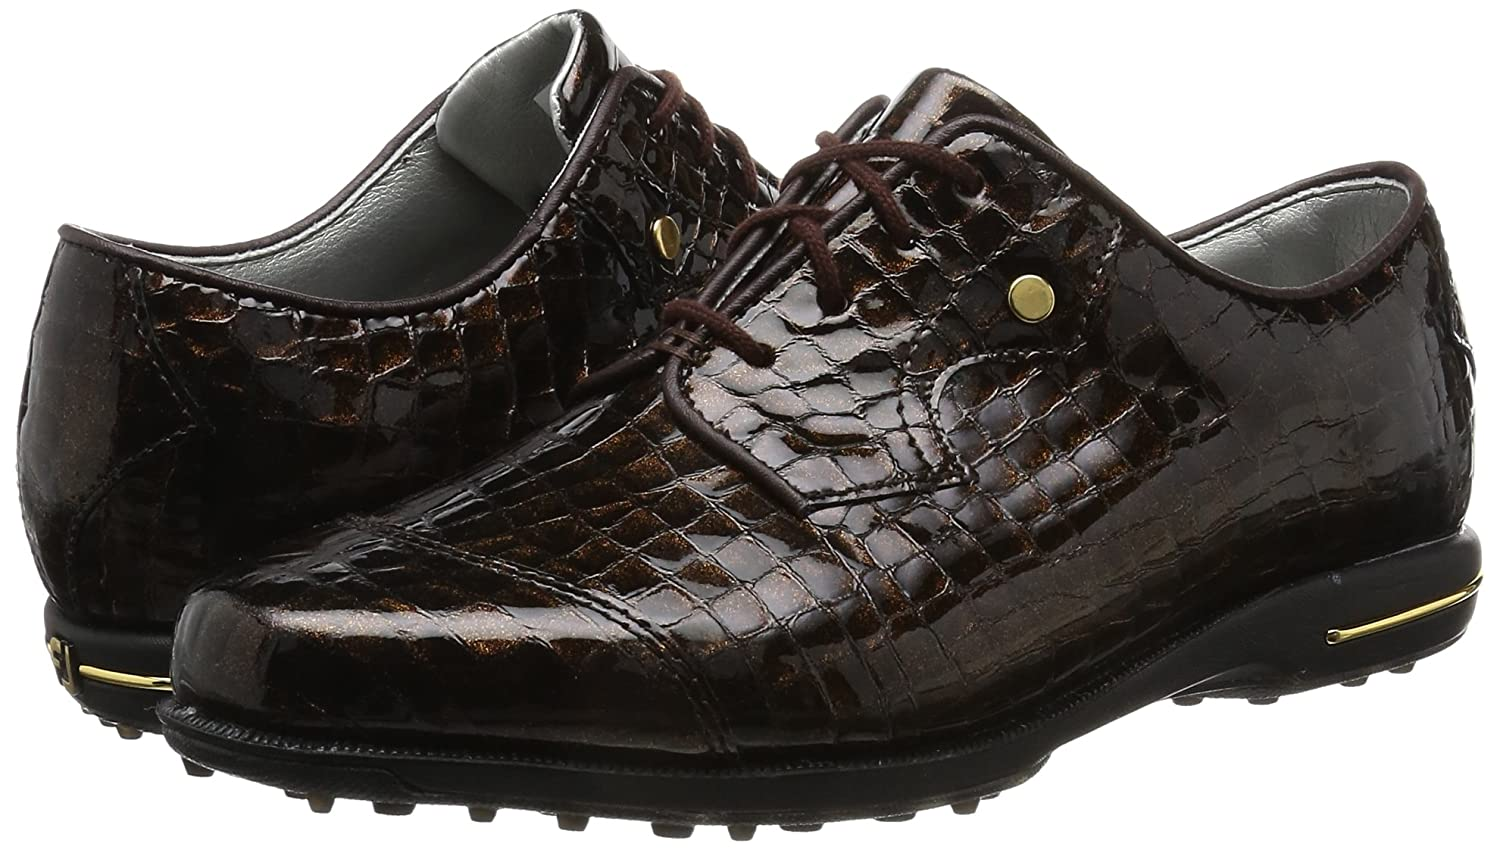 FootJoy Women's Tailored Collection Golf Shoes B01KP08TYI 10 B(M) US|Bronze Print